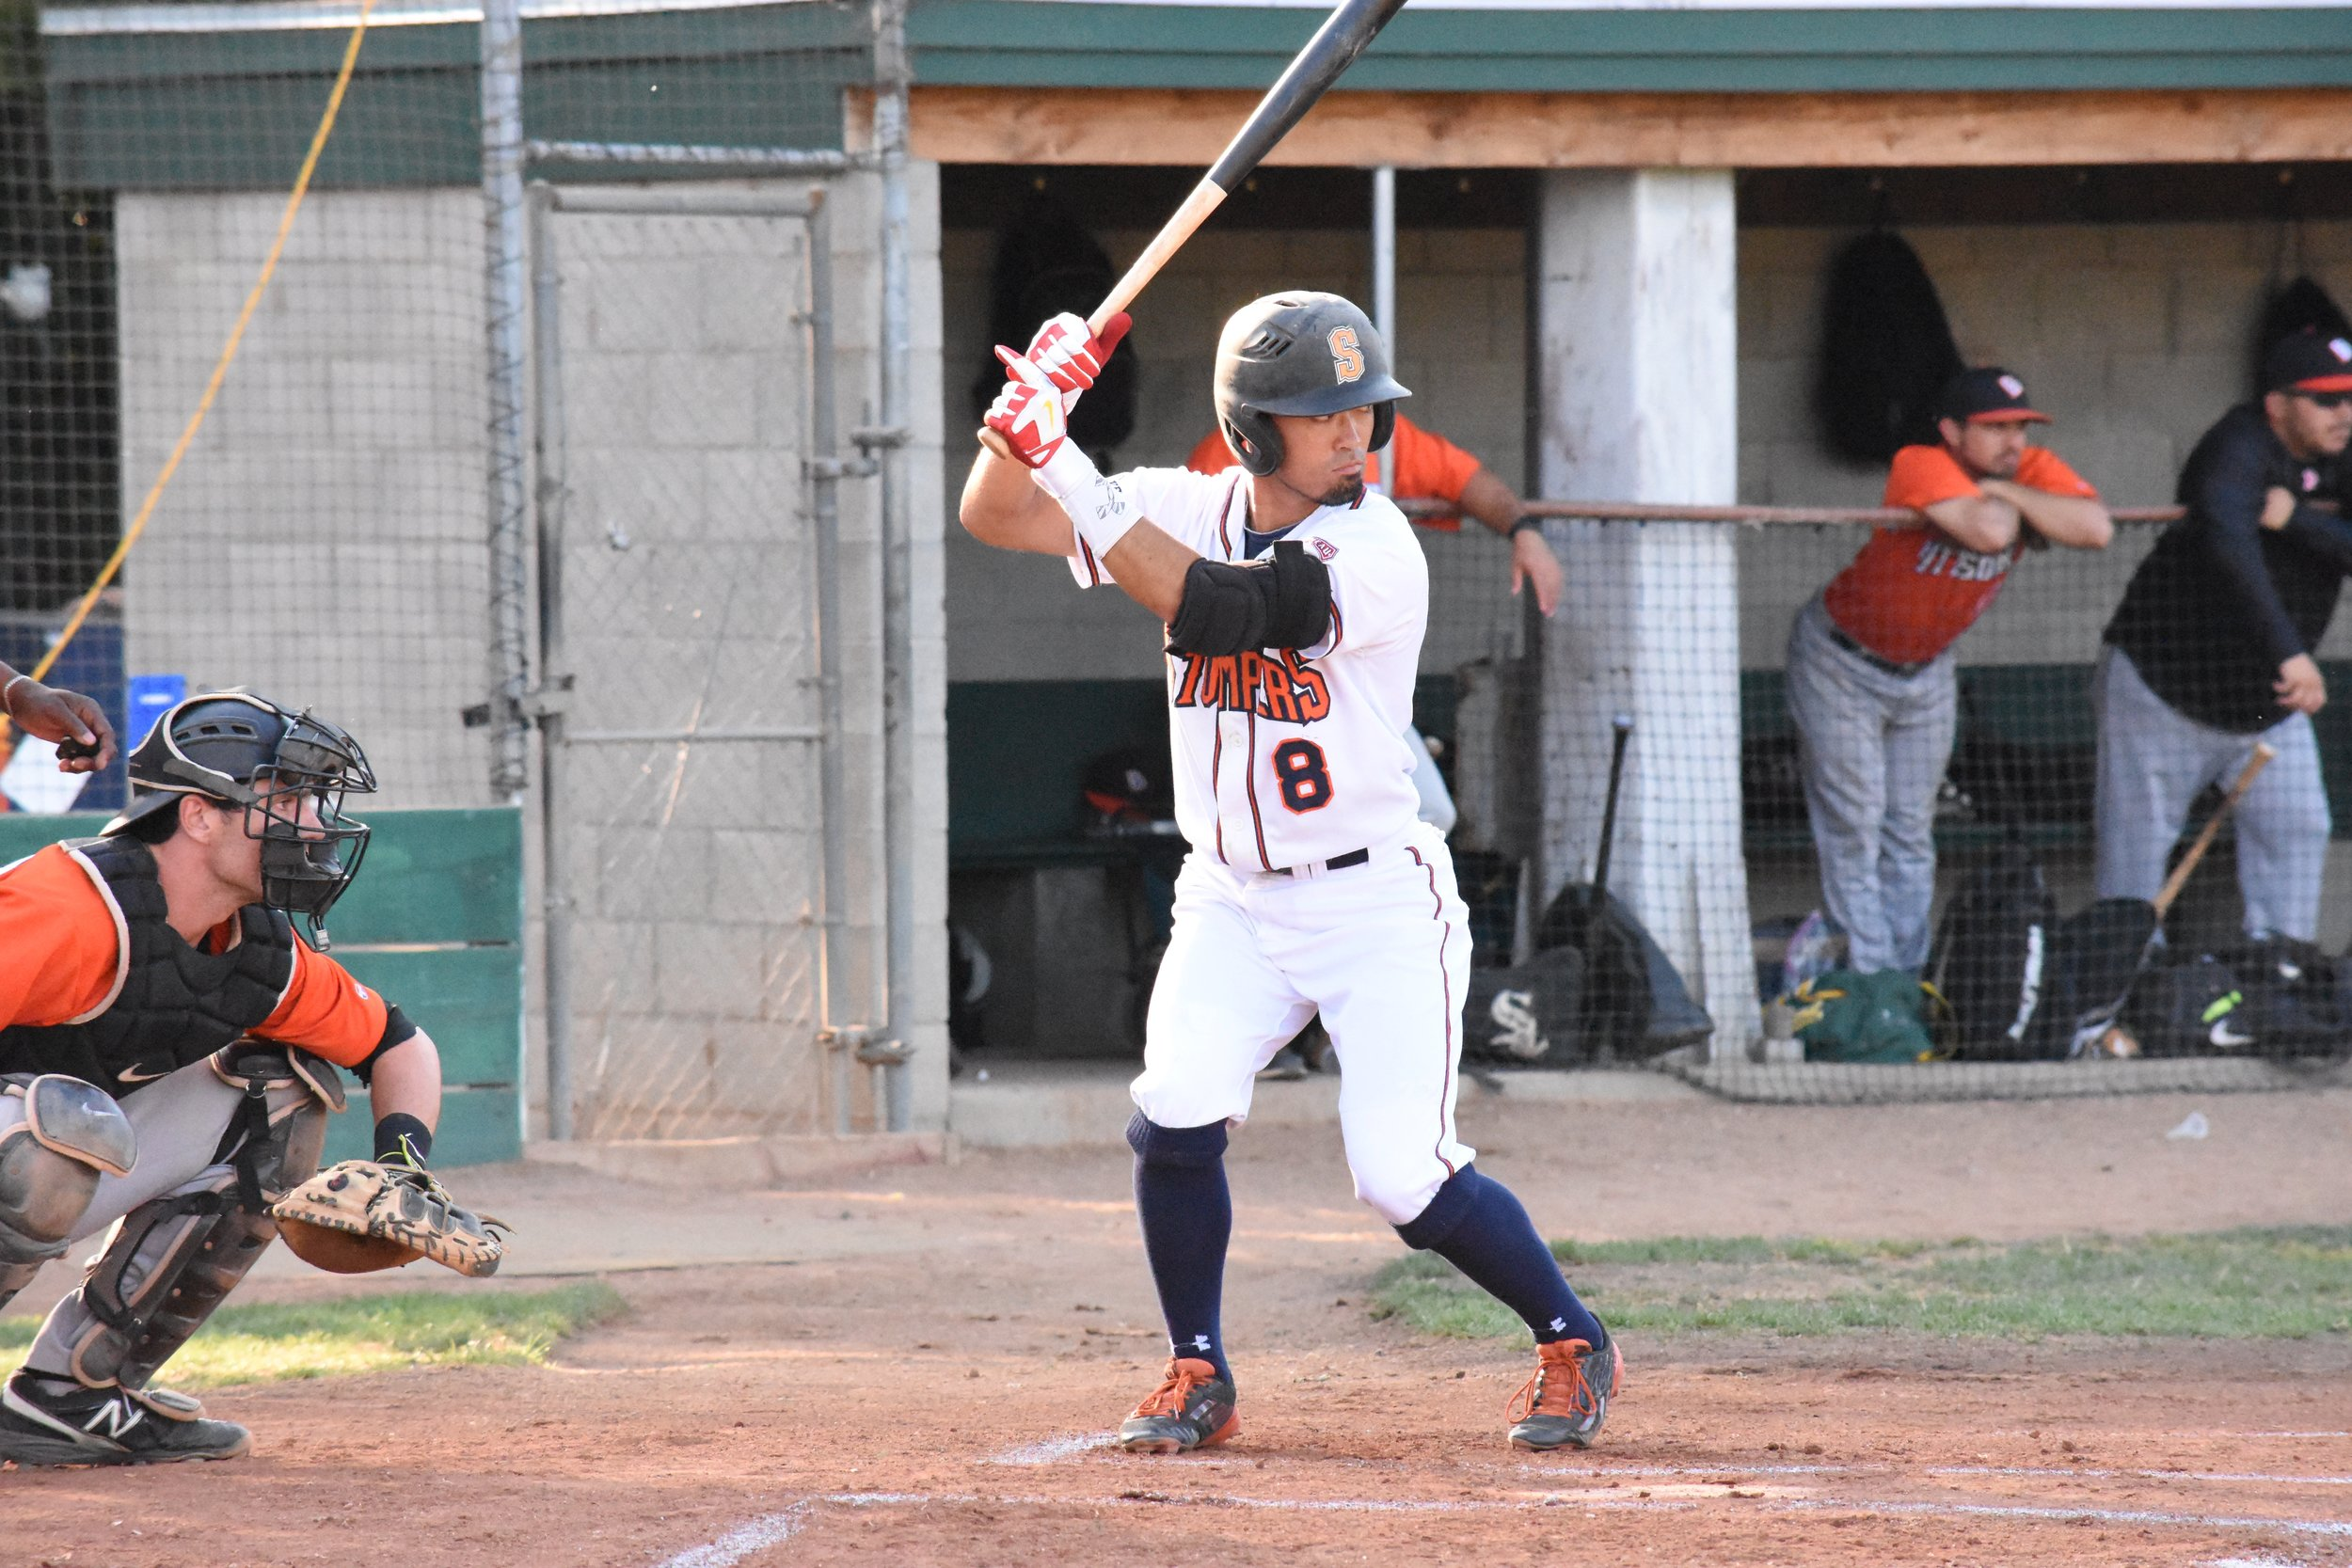 Yuki Yasuda went 2 for 4 in Wednesday night's loss to the Pittsburg Diamonds, marking the first time the Stompers have lost three games in a row this season. (James W. Toy III / Sonoma Stompers)